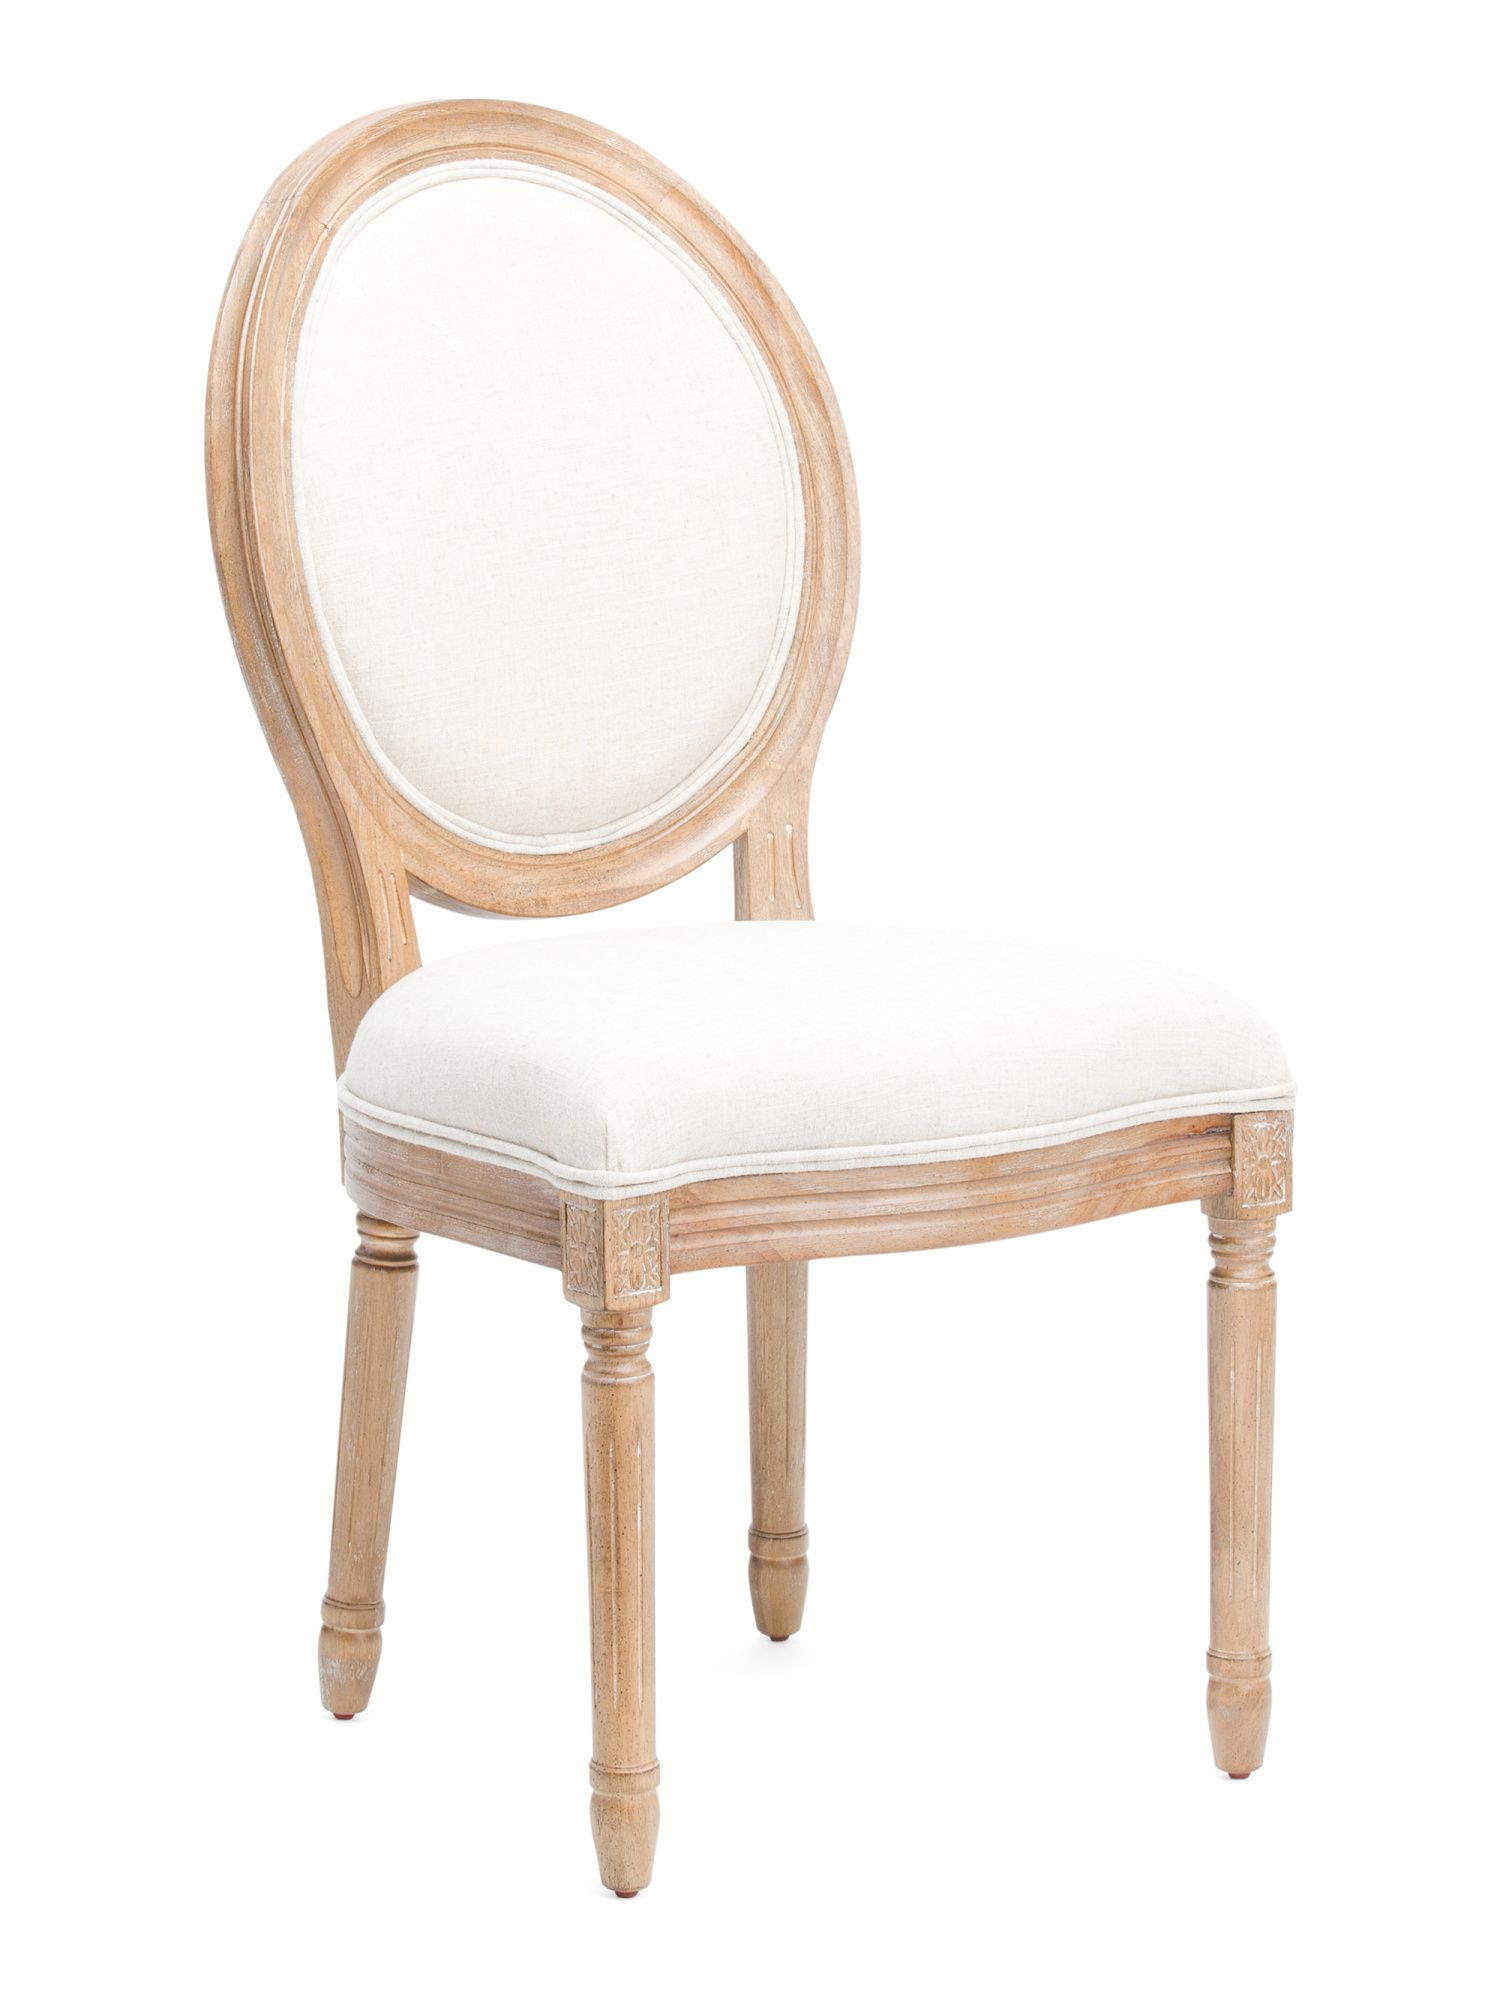 Lilian Dining Chair - Accent Furniture - T.J.Maxx in 2020 ...